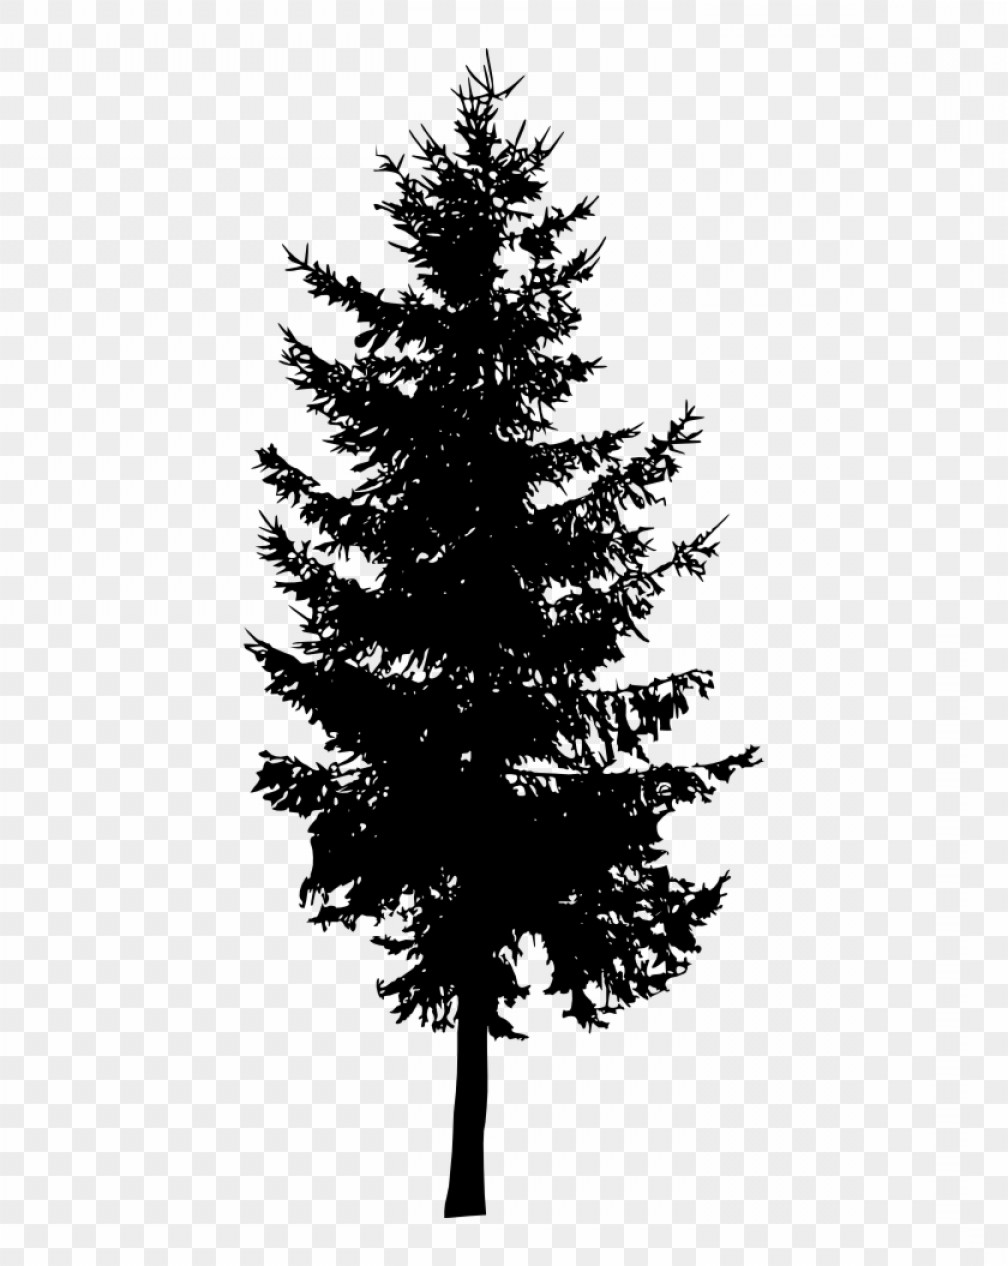 Mhimhndkfree Download Pine Tree Silhouette Png.